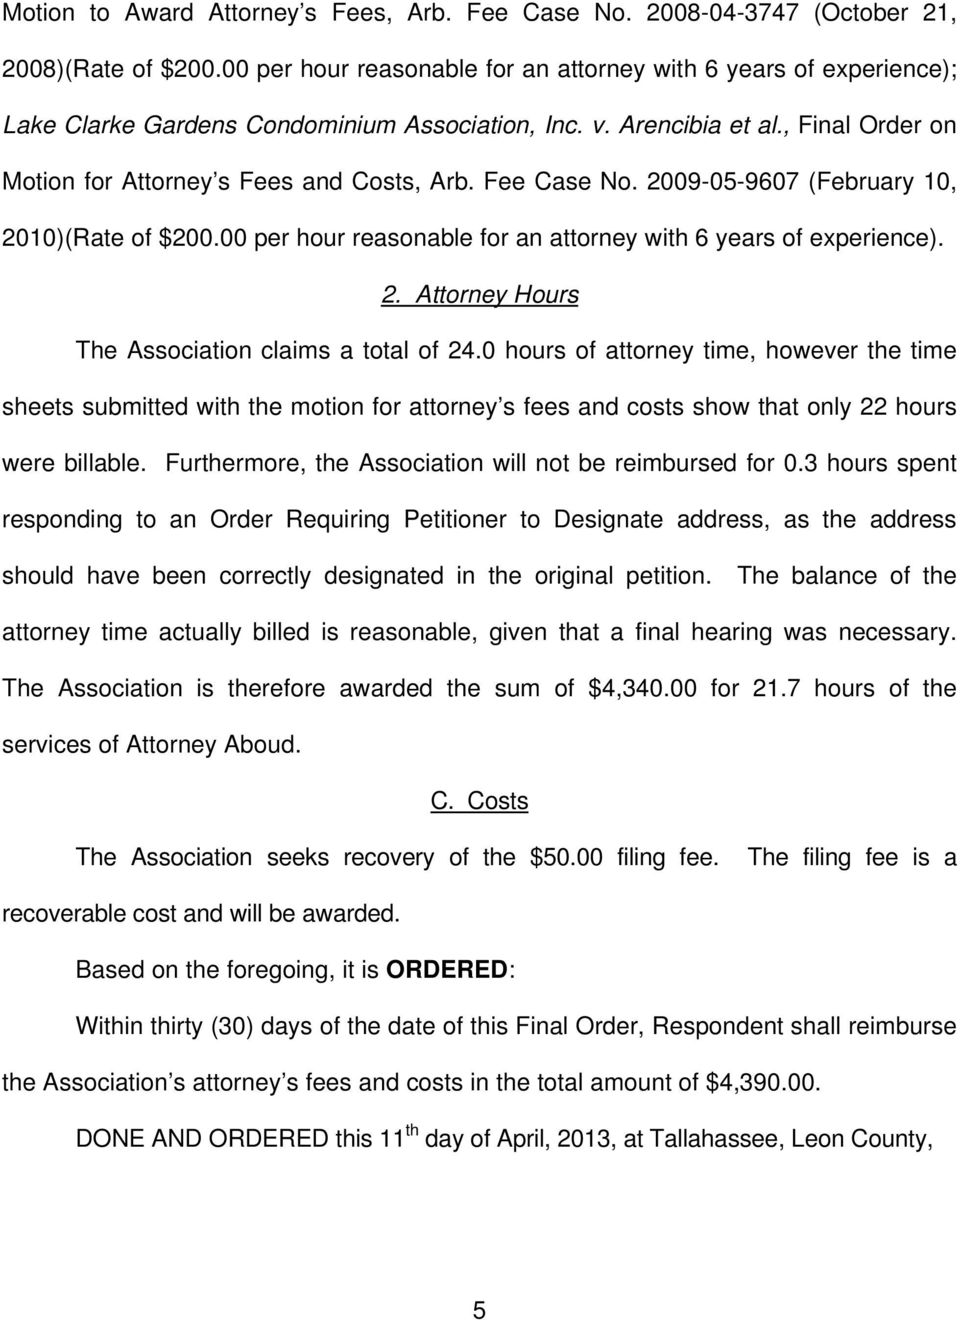 Fee Case No. 2009-05-9607 (February 10, 2010)(Rate of $200.00 per hour reasonable for an attorney with 6 years of experience). 2. Attorney Hours The Association claims a total of 24.